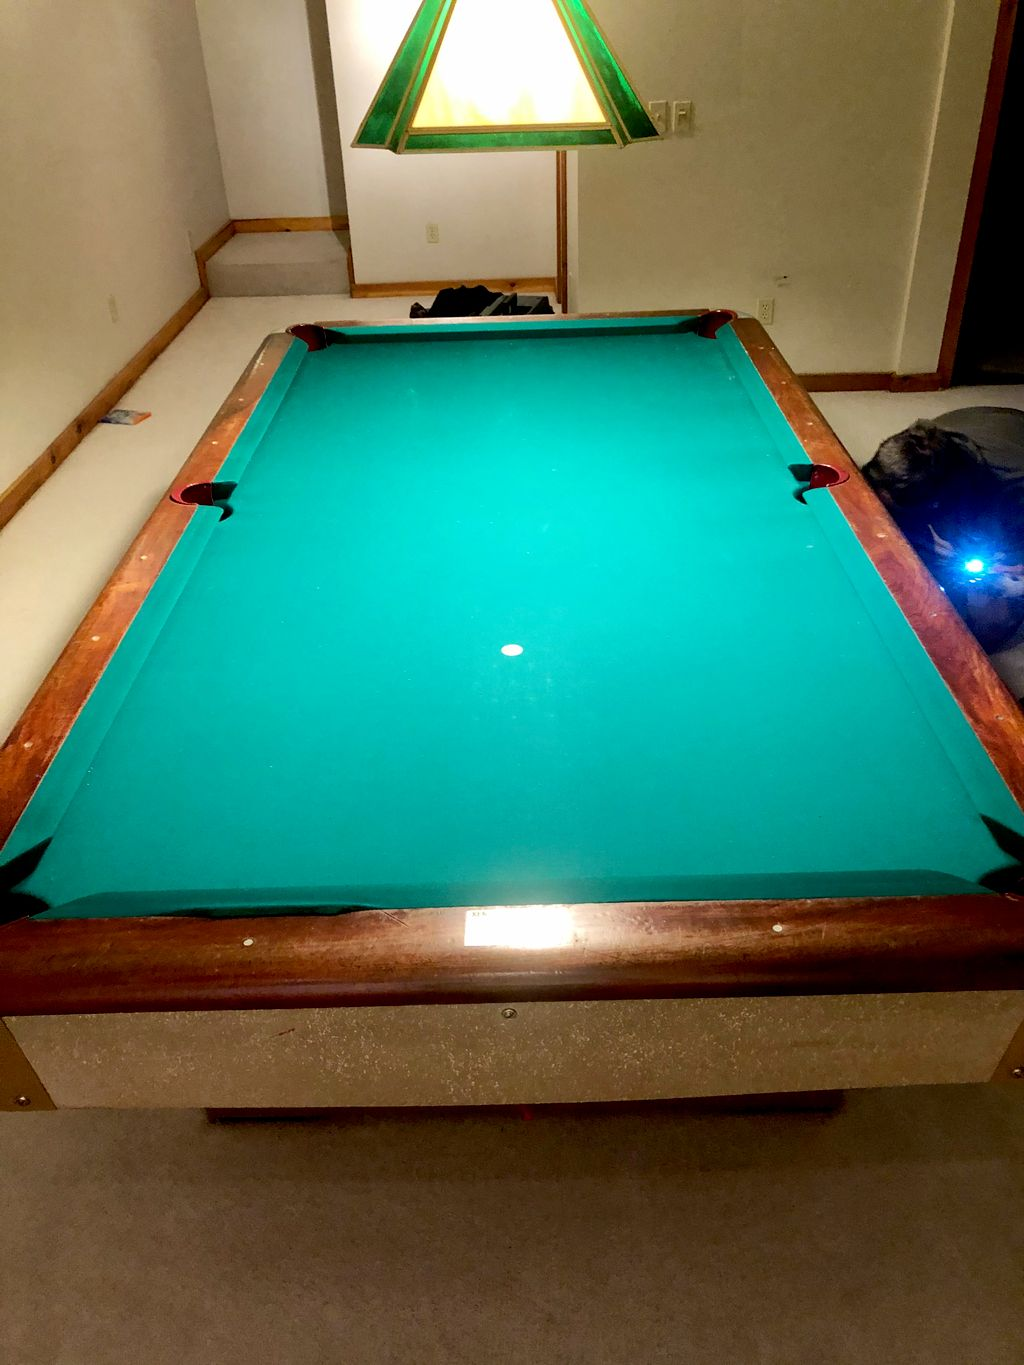 1965 Pool table move and changed felt